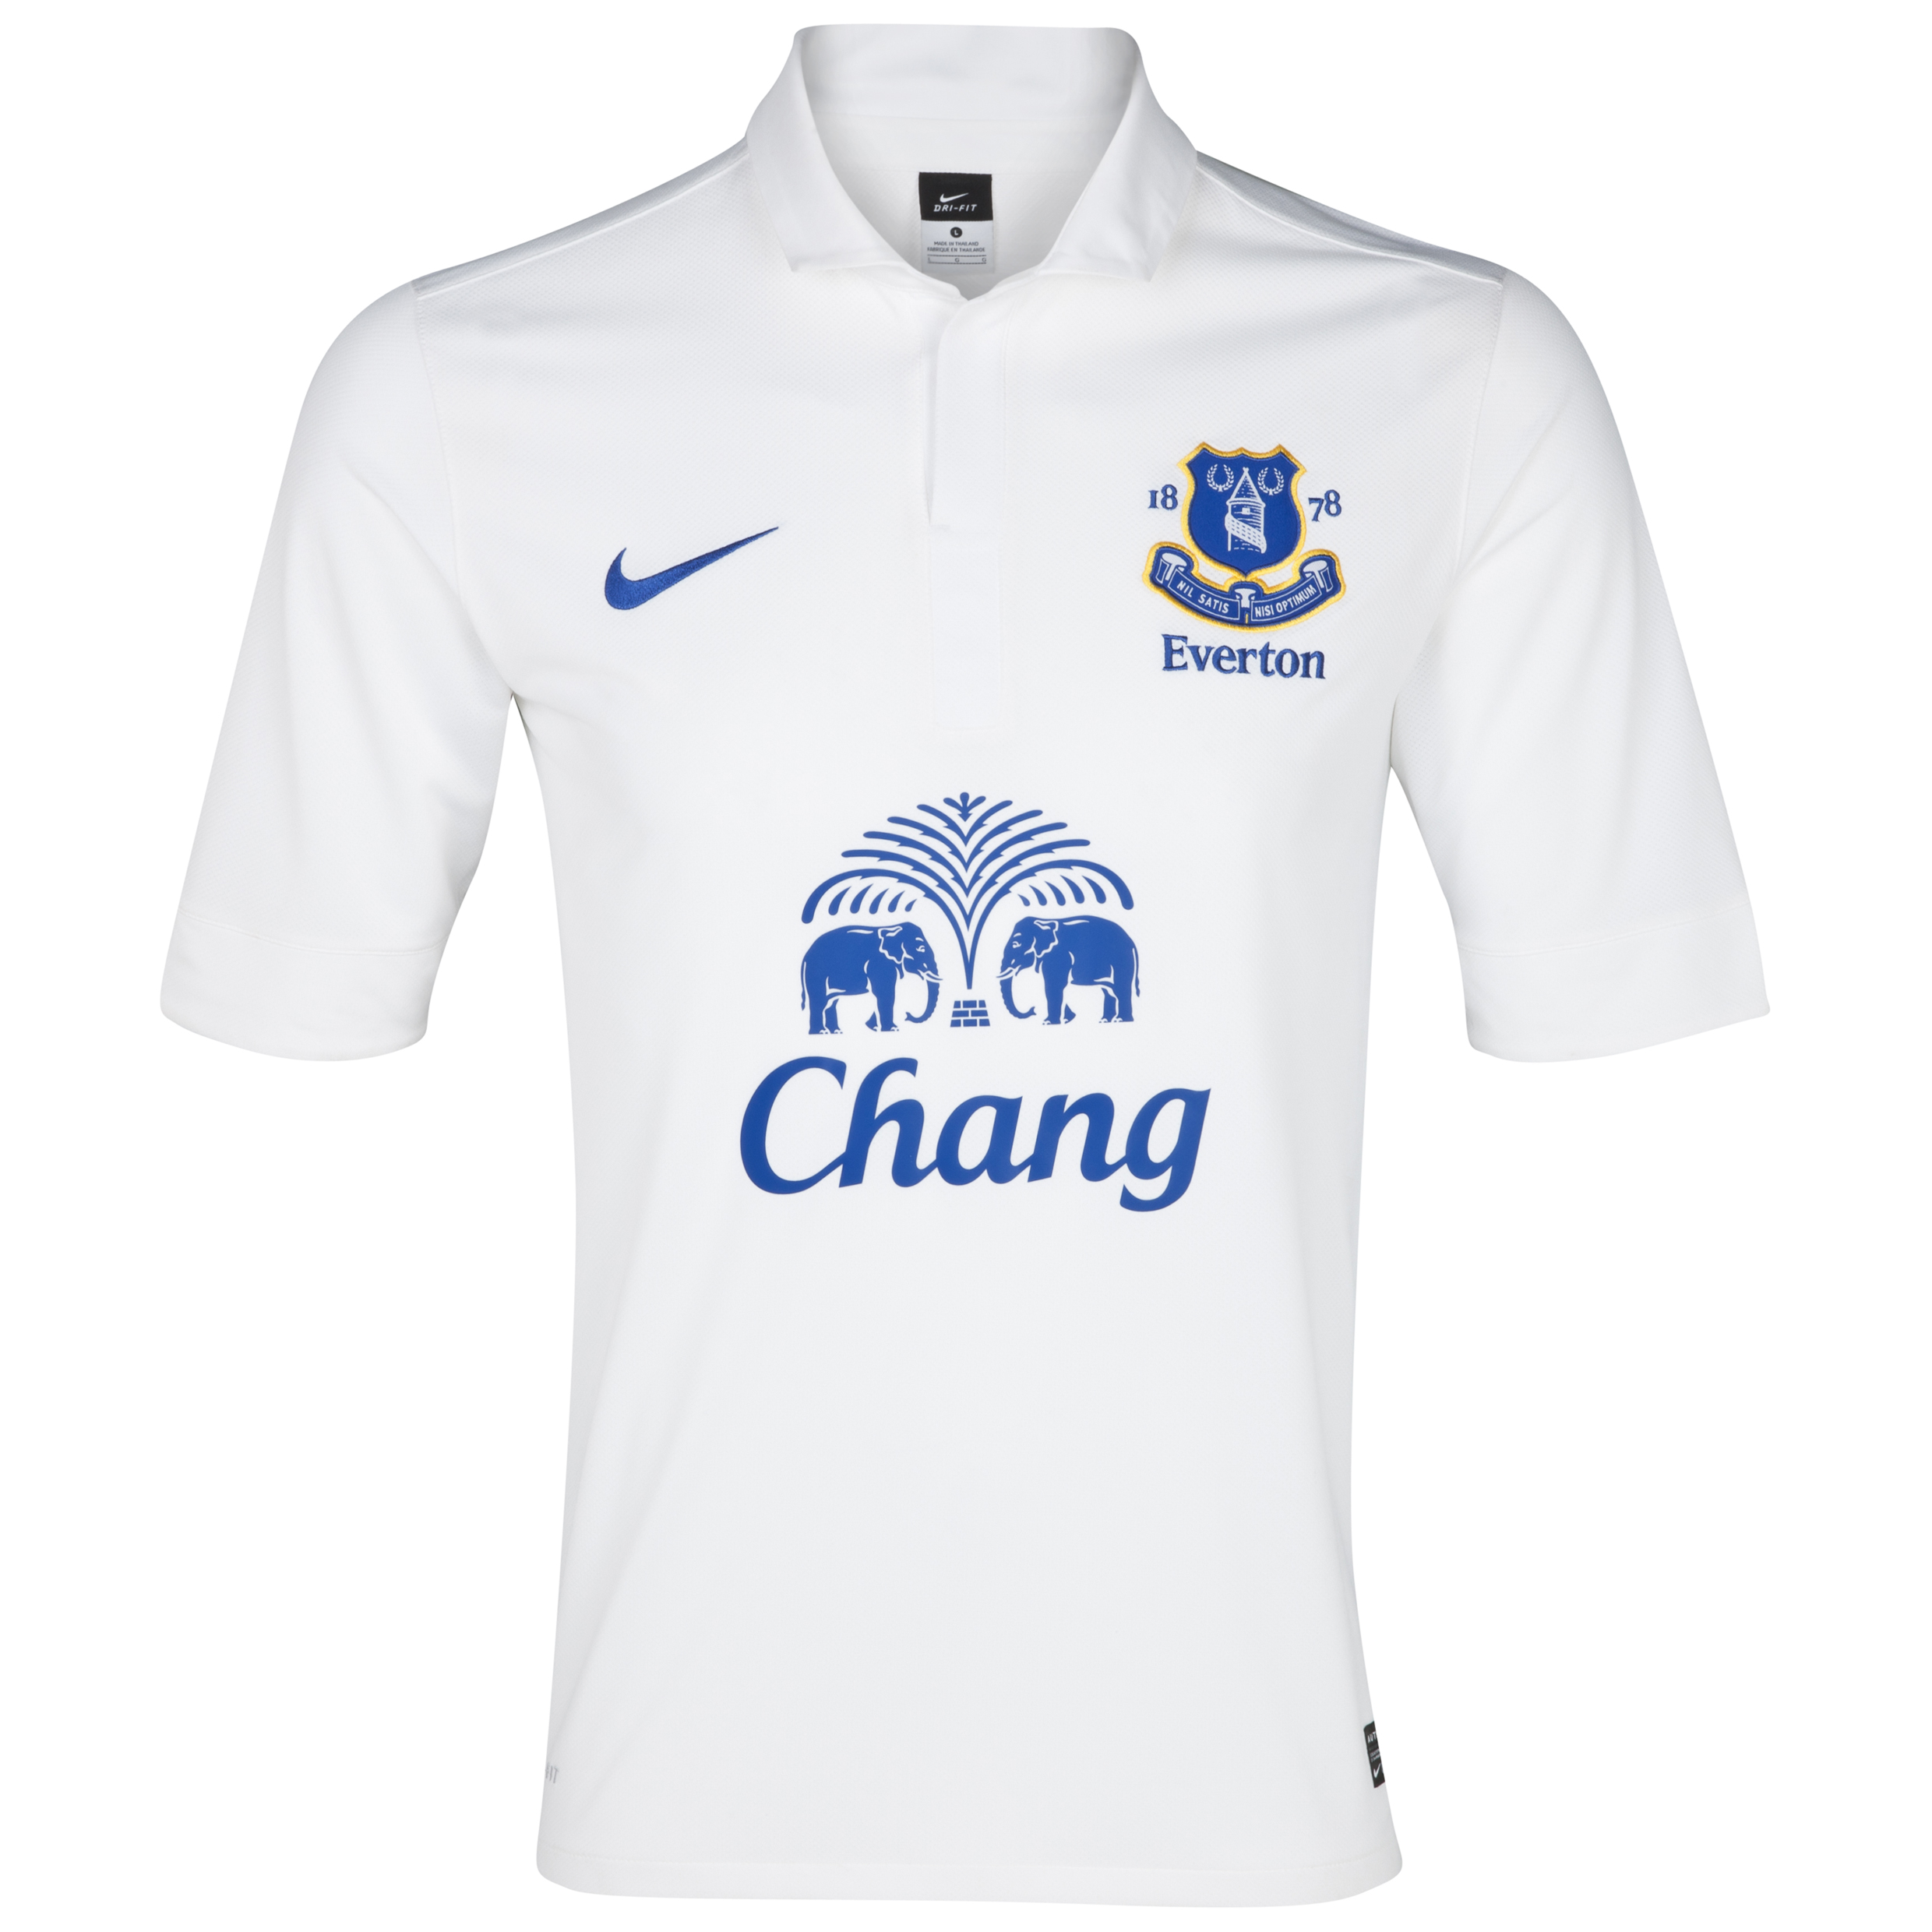 Everton 3rd Shirt 2012/13